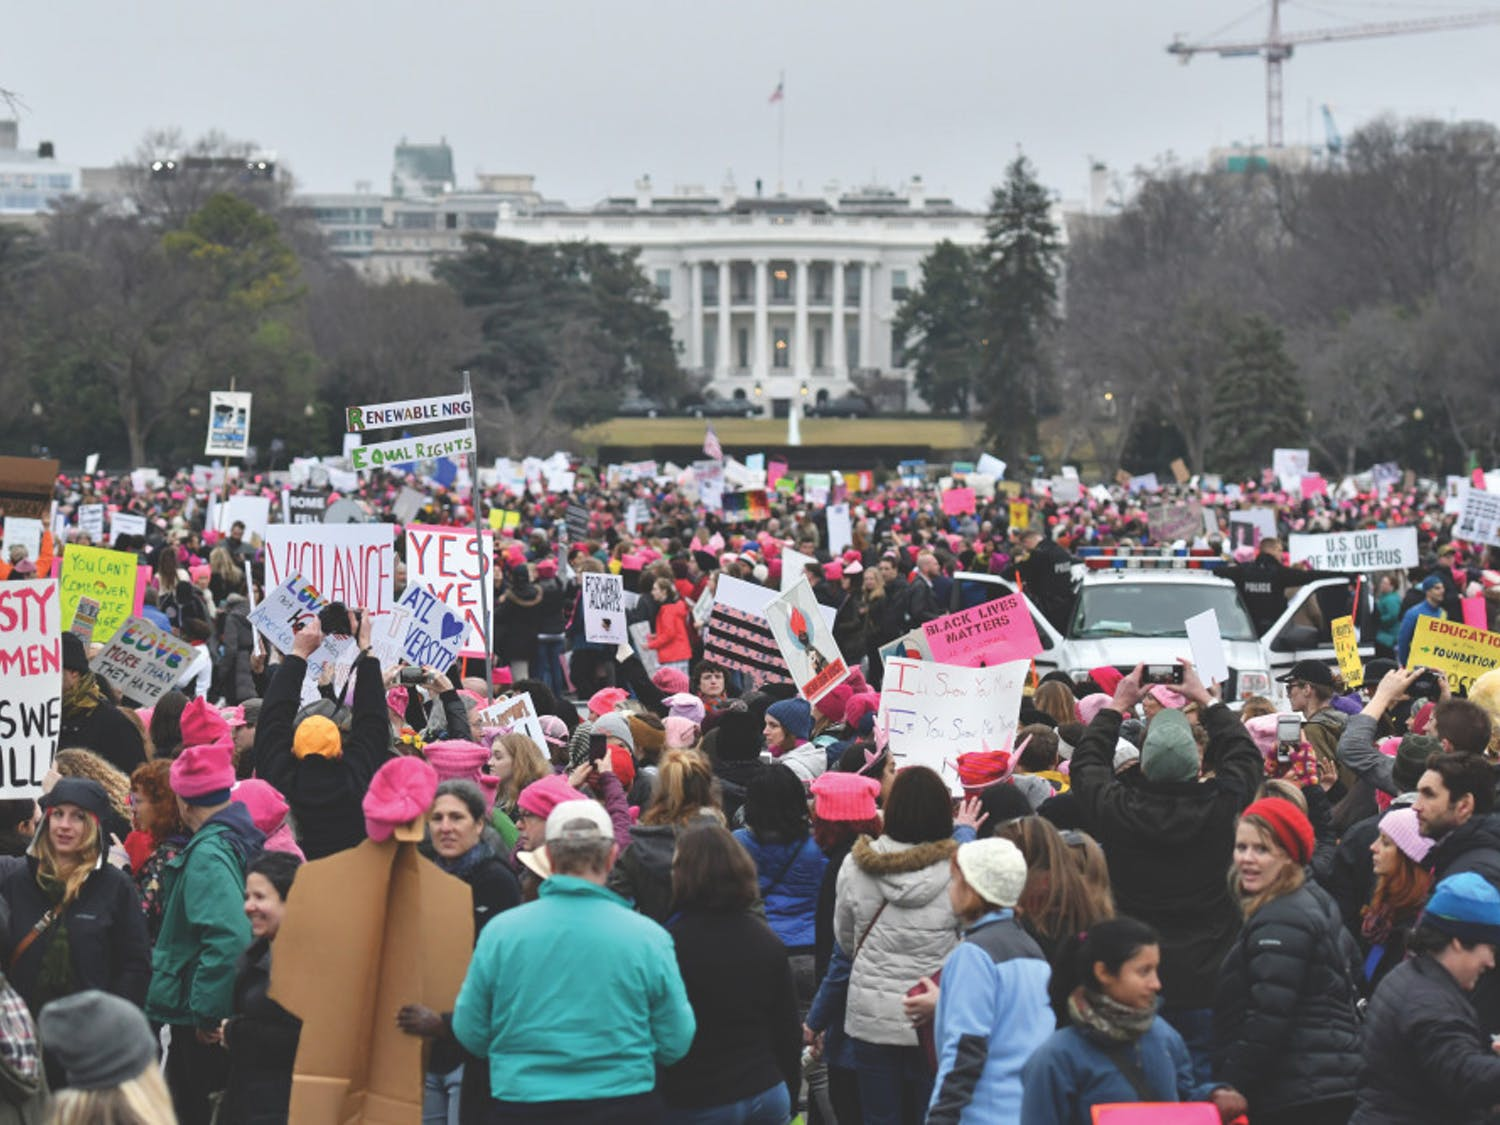 """Thousands gather on the Ellipse near the back lawn of the White House at the conclusion of the Women's March on Washington. Many of the marchers placed their posters along a few small fences to create """"walls"""" near the White House."""